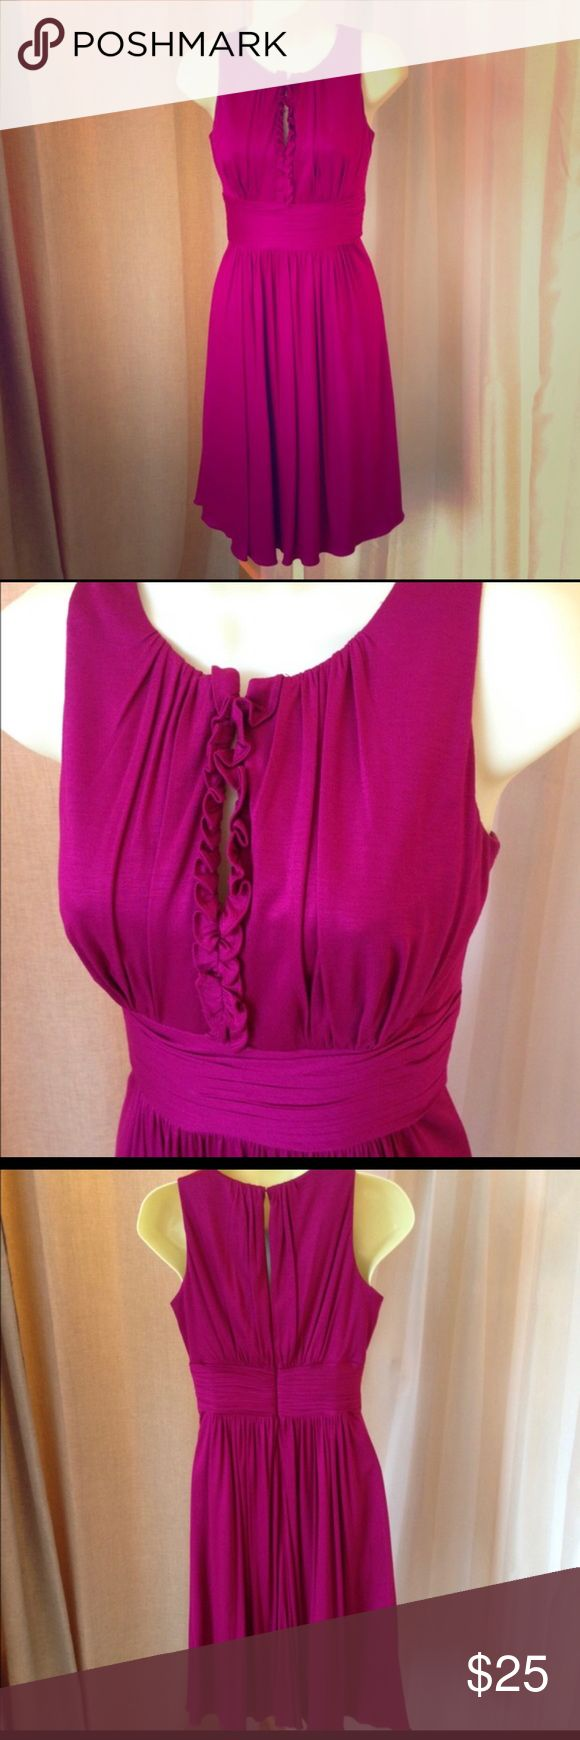 Kay Unger Dress Magenta light and airy Kay Unger dress. Key hole front and back with hidden zipper. Worn once, excellent condition Kay Unger Dresses